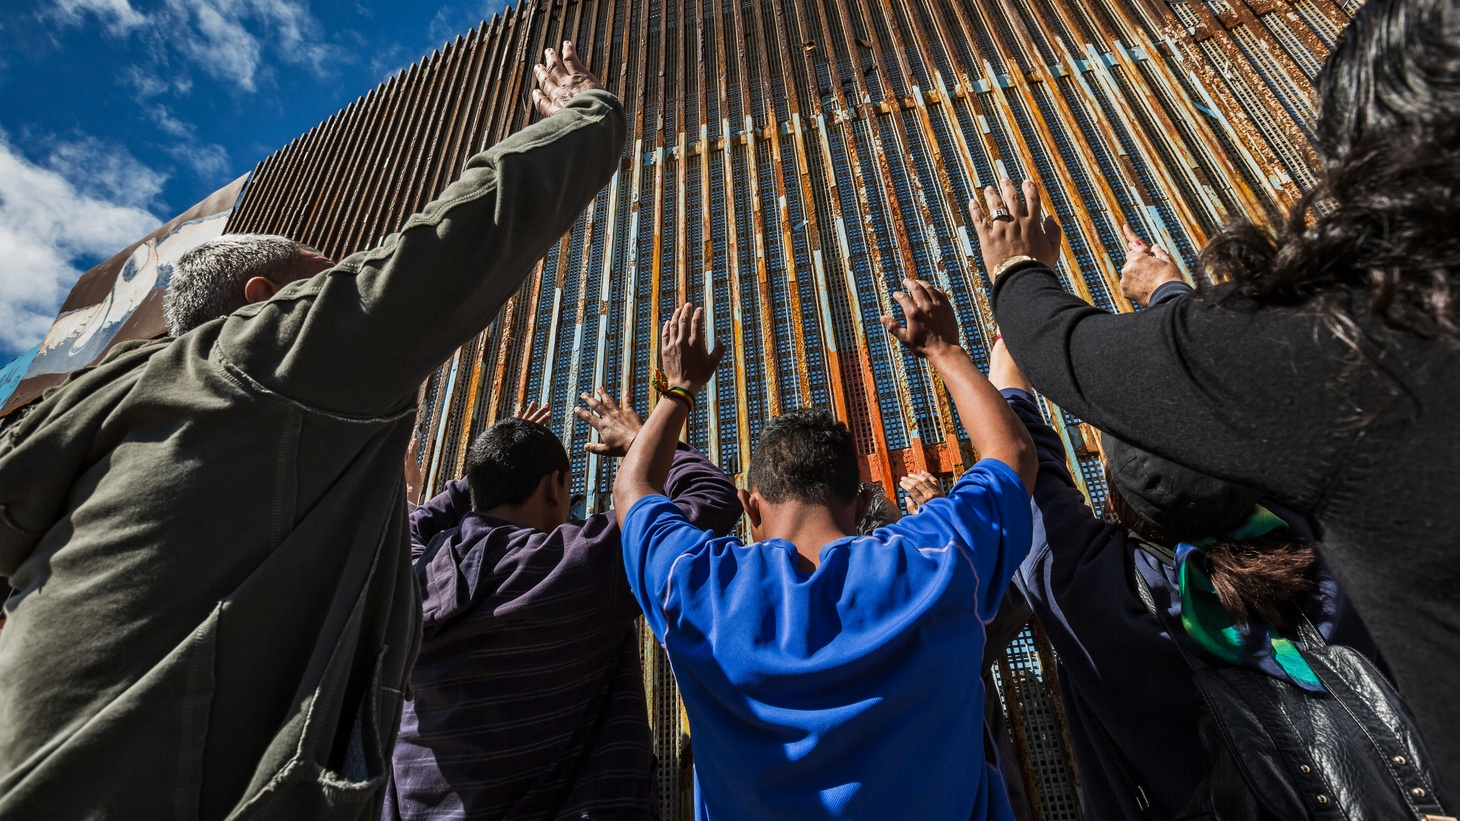 A prayer service at the border fence in Tijuana. Many of the participants took communion then attempted to cross the border. March 5, 2017, US/Mexico border, Tijuana, Mexico.